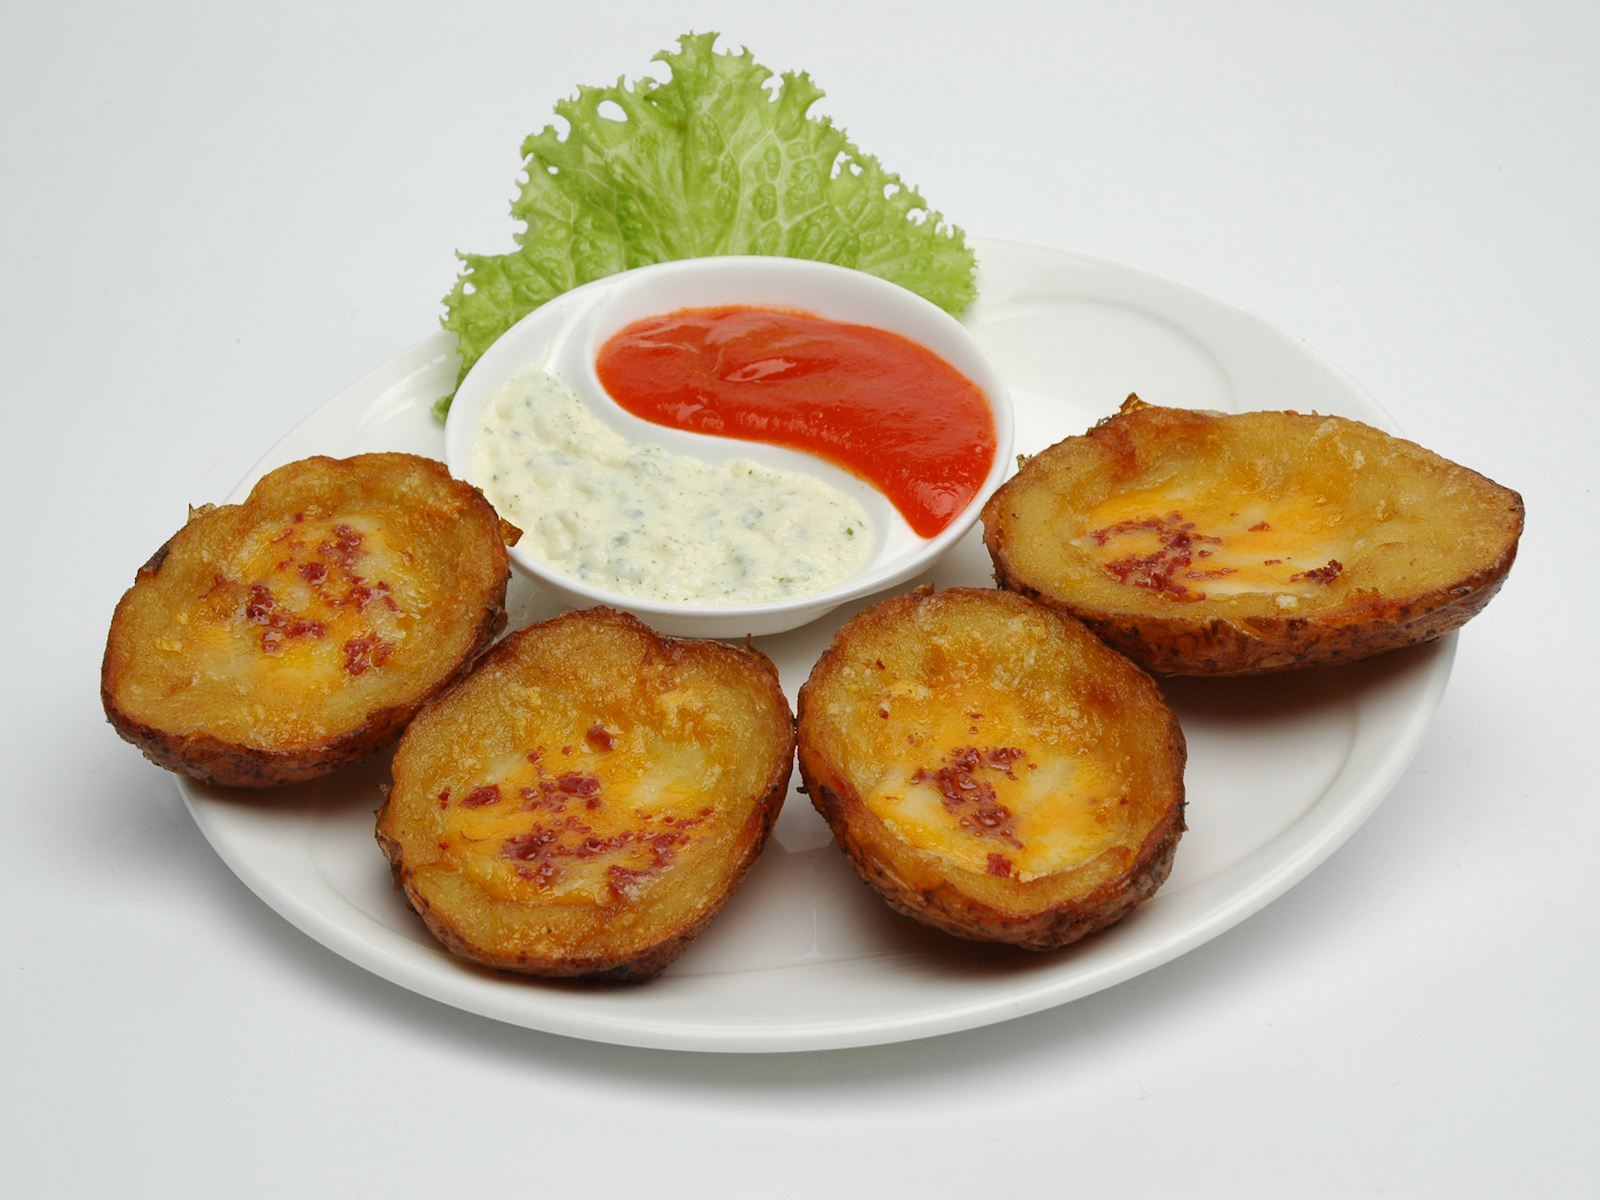 File:Potato skins arranged on a plate as an appetizer.jpg - Wikimedia ...